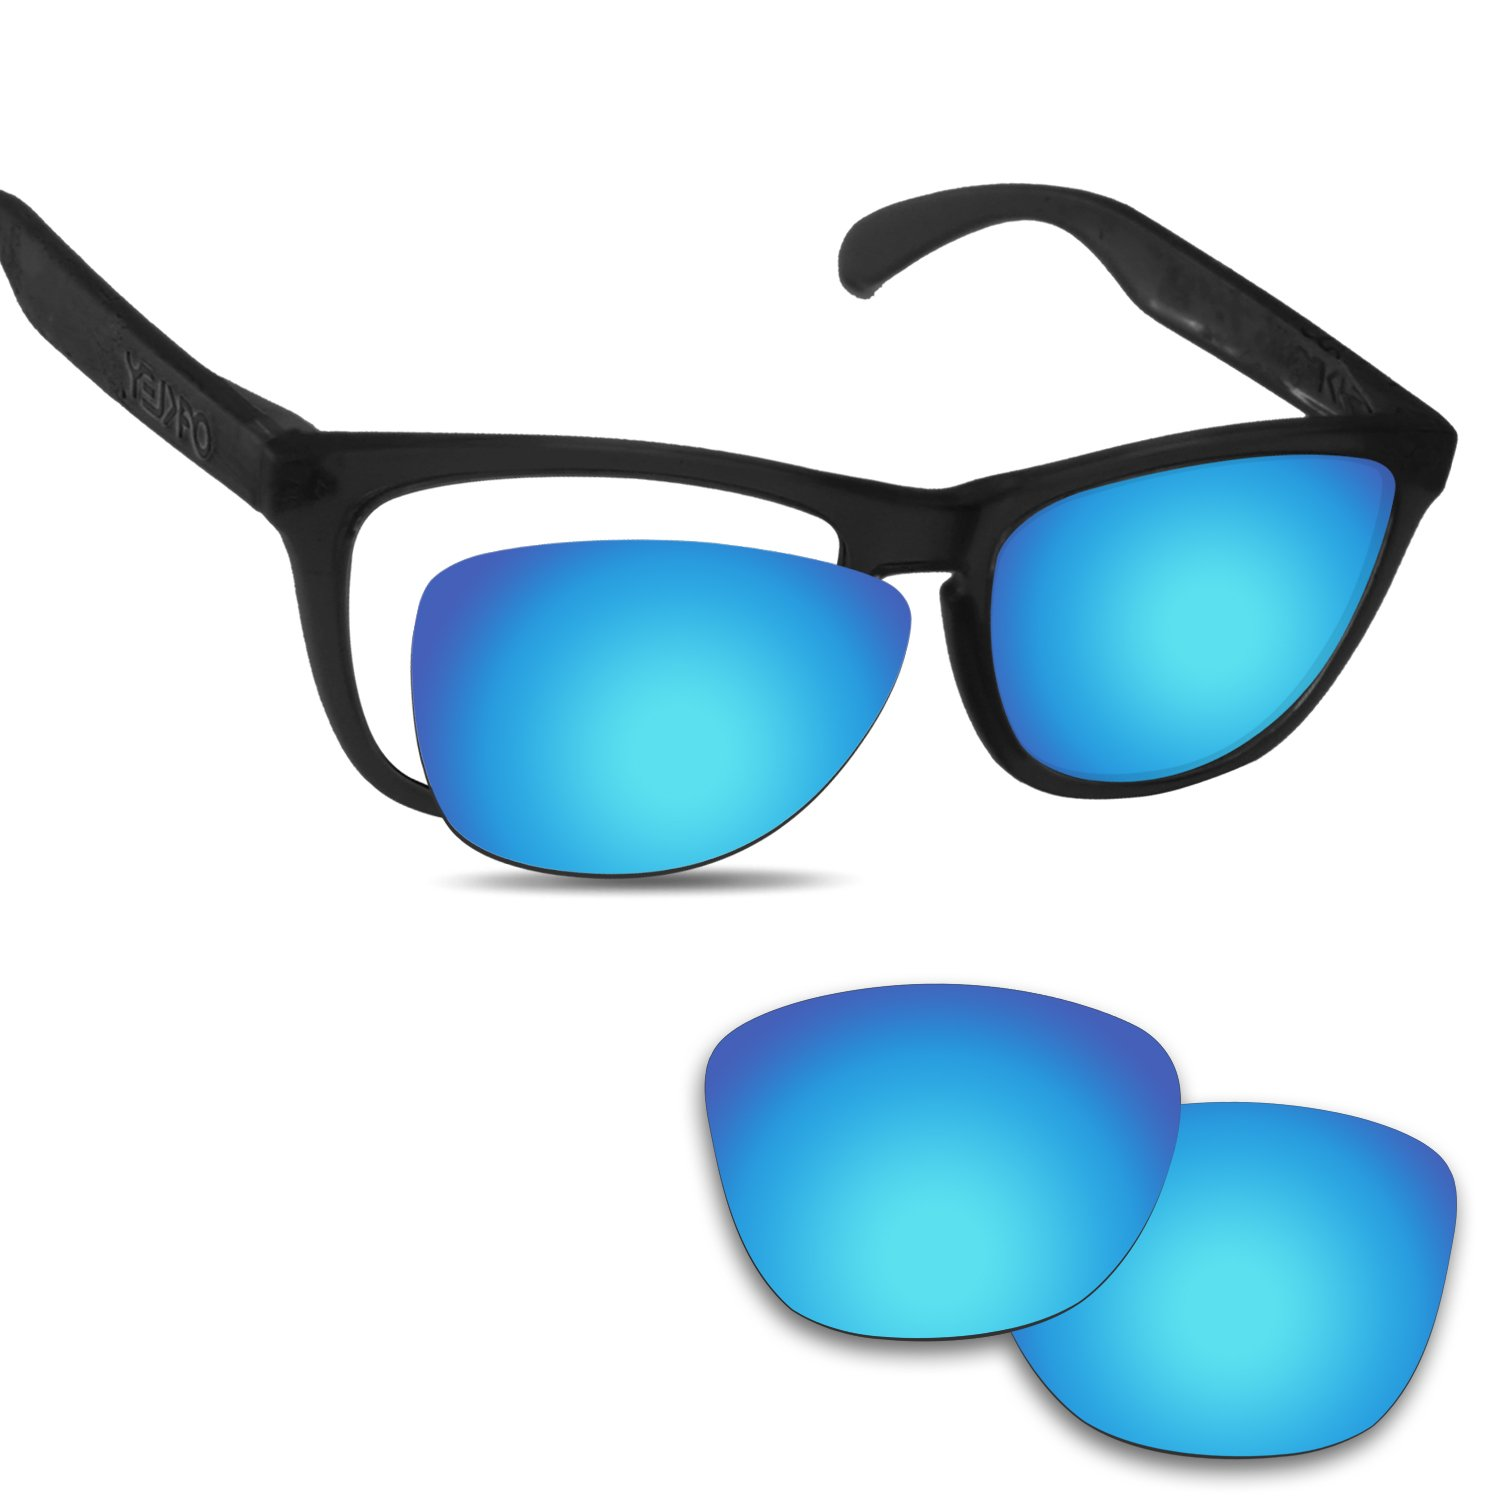 Fiskr Anti-saltwater Replacement Lenses for Oakley Frogskins Sunglasses - Various Colors (Ice Blue - Anti4s Mirror Polarized, 0) by Fiskr